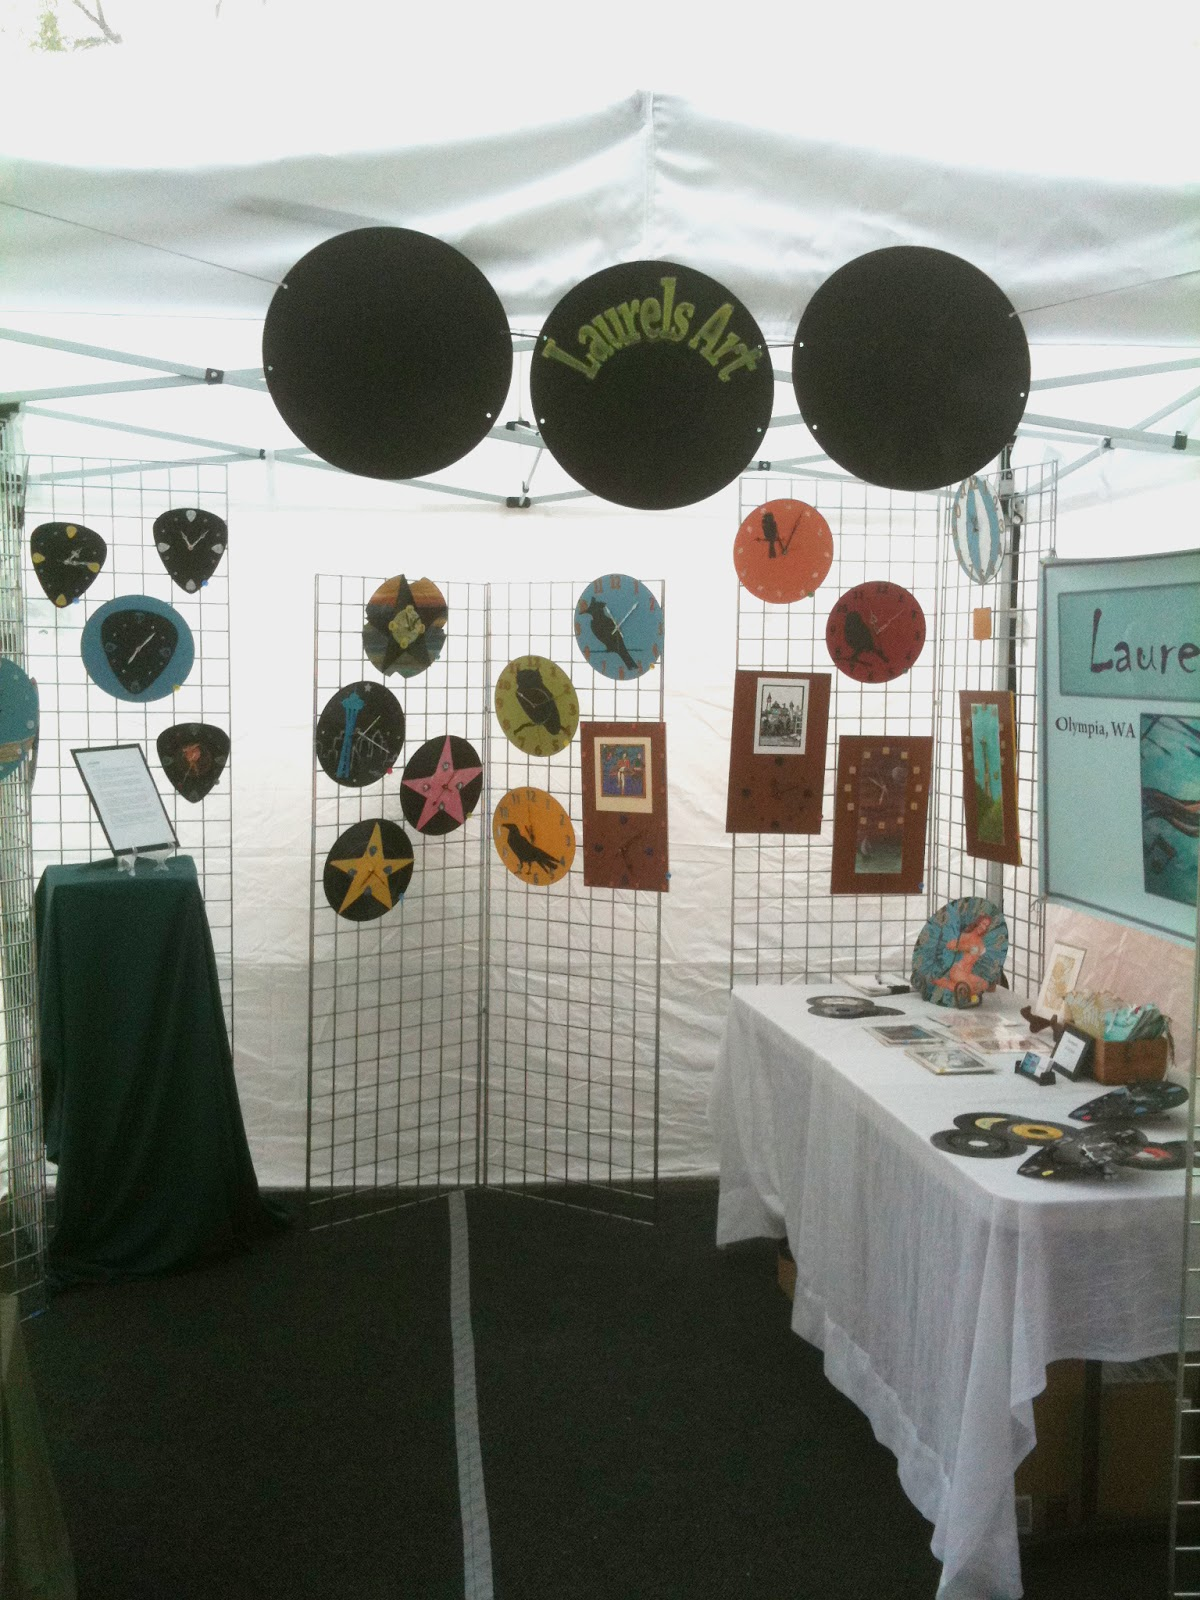 Craft Booth Tent http://artoly.blogspot.com/2011/07/show-me-your-booth.html